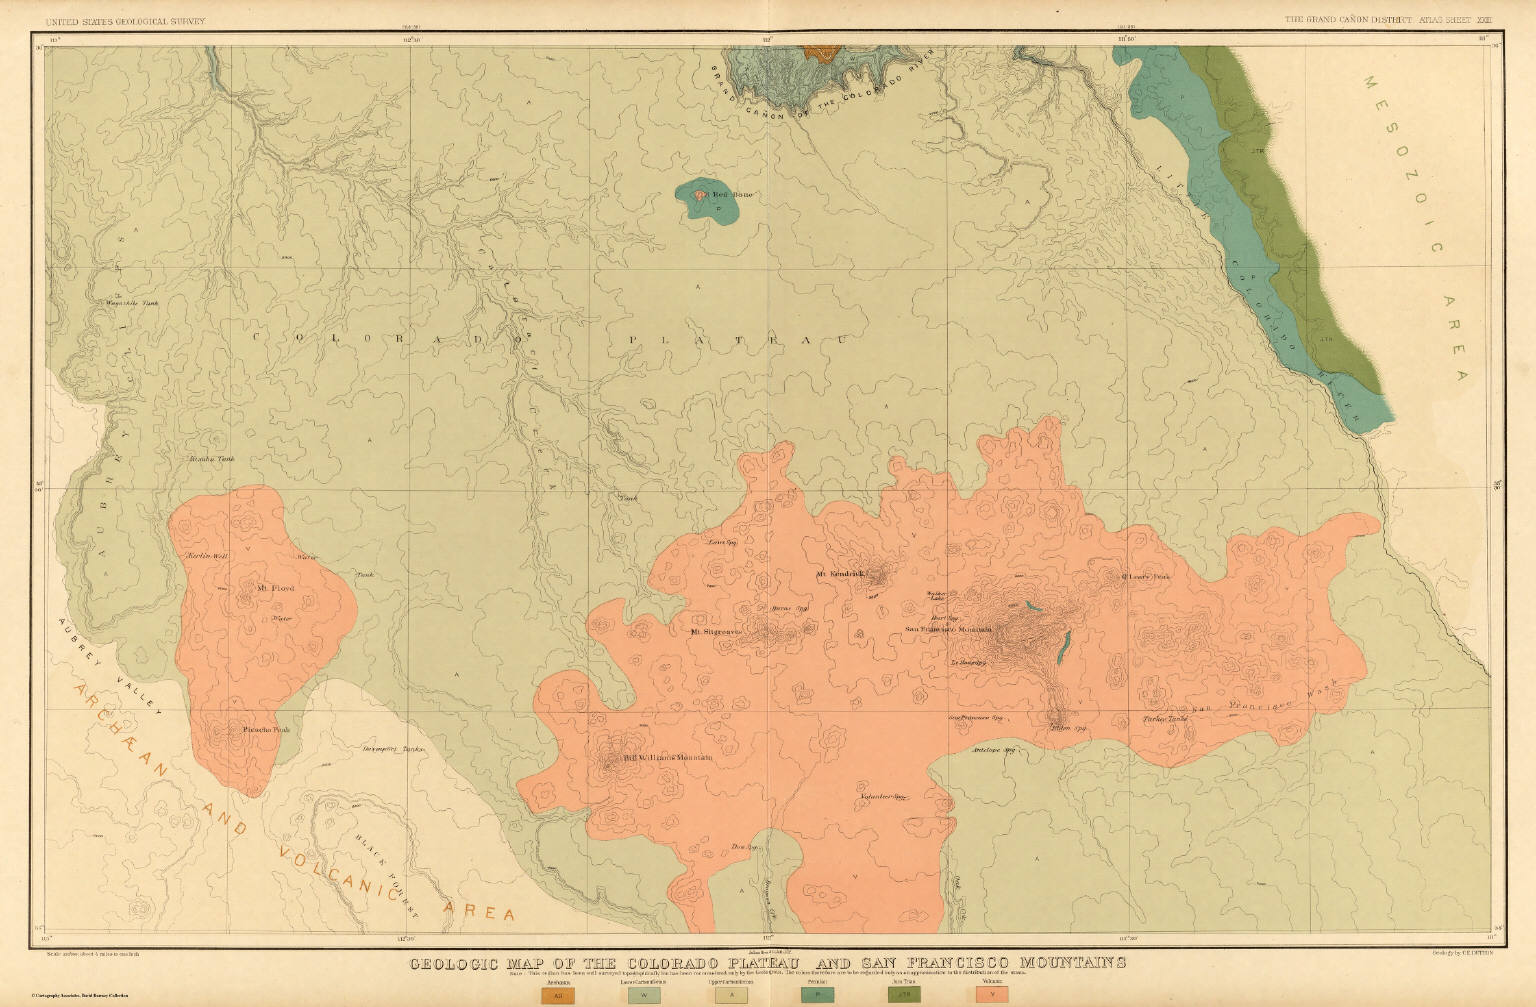 Map Of The Colorado Plateau And San Francisco Mountains  Dutton - Map of colorado plateau region